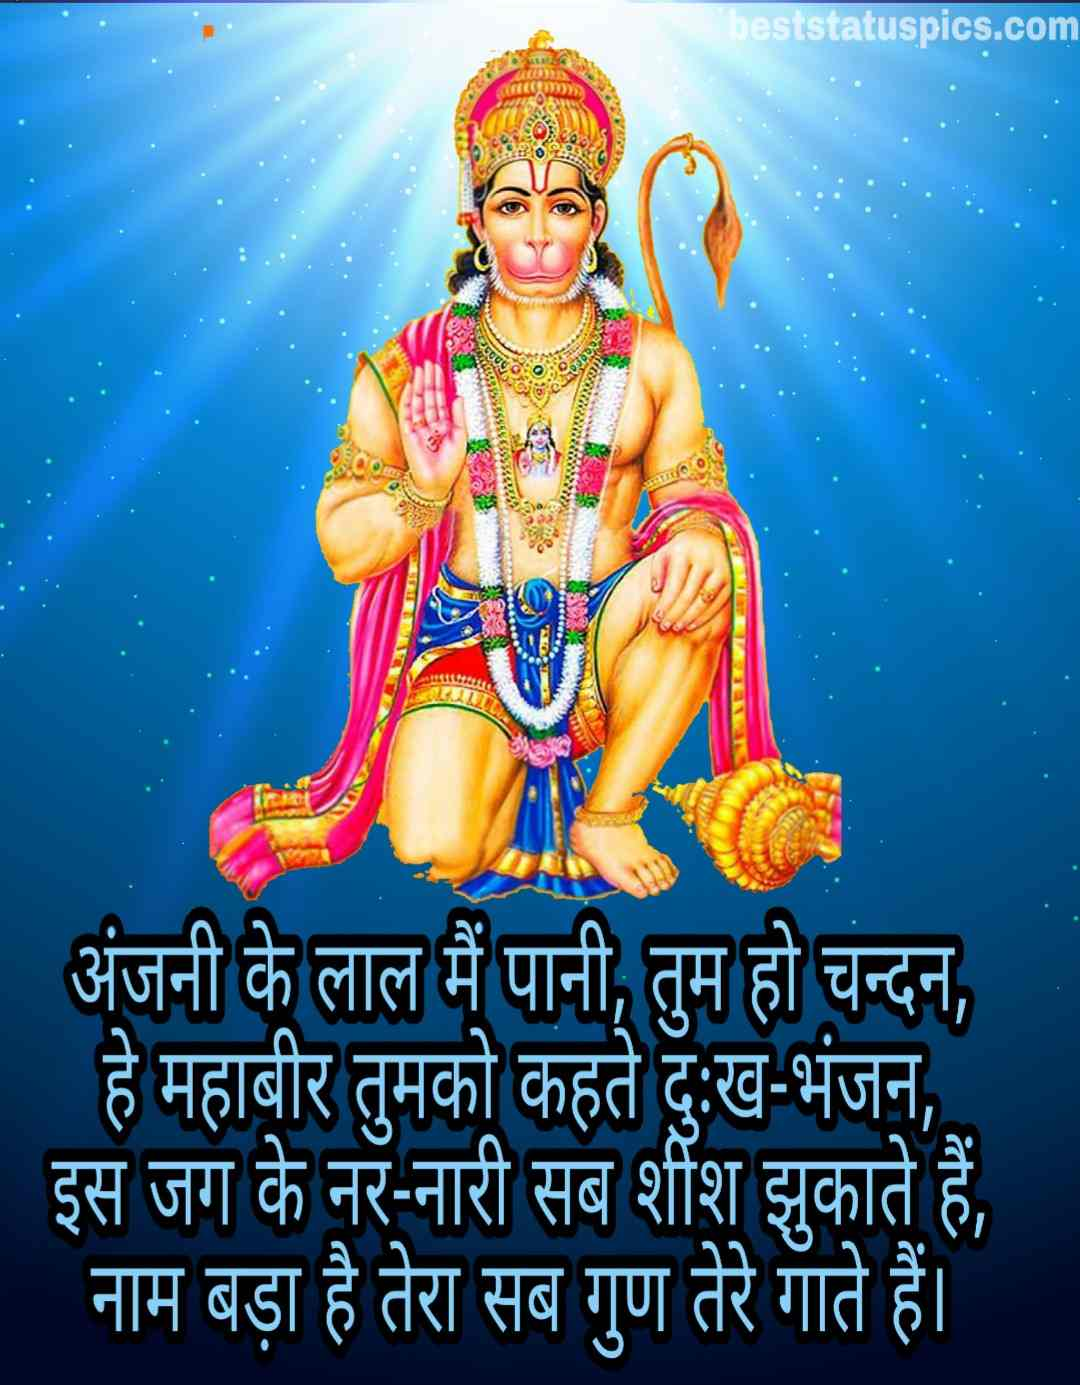 Hanuman Jayanti Wishes Images for whatapp 5